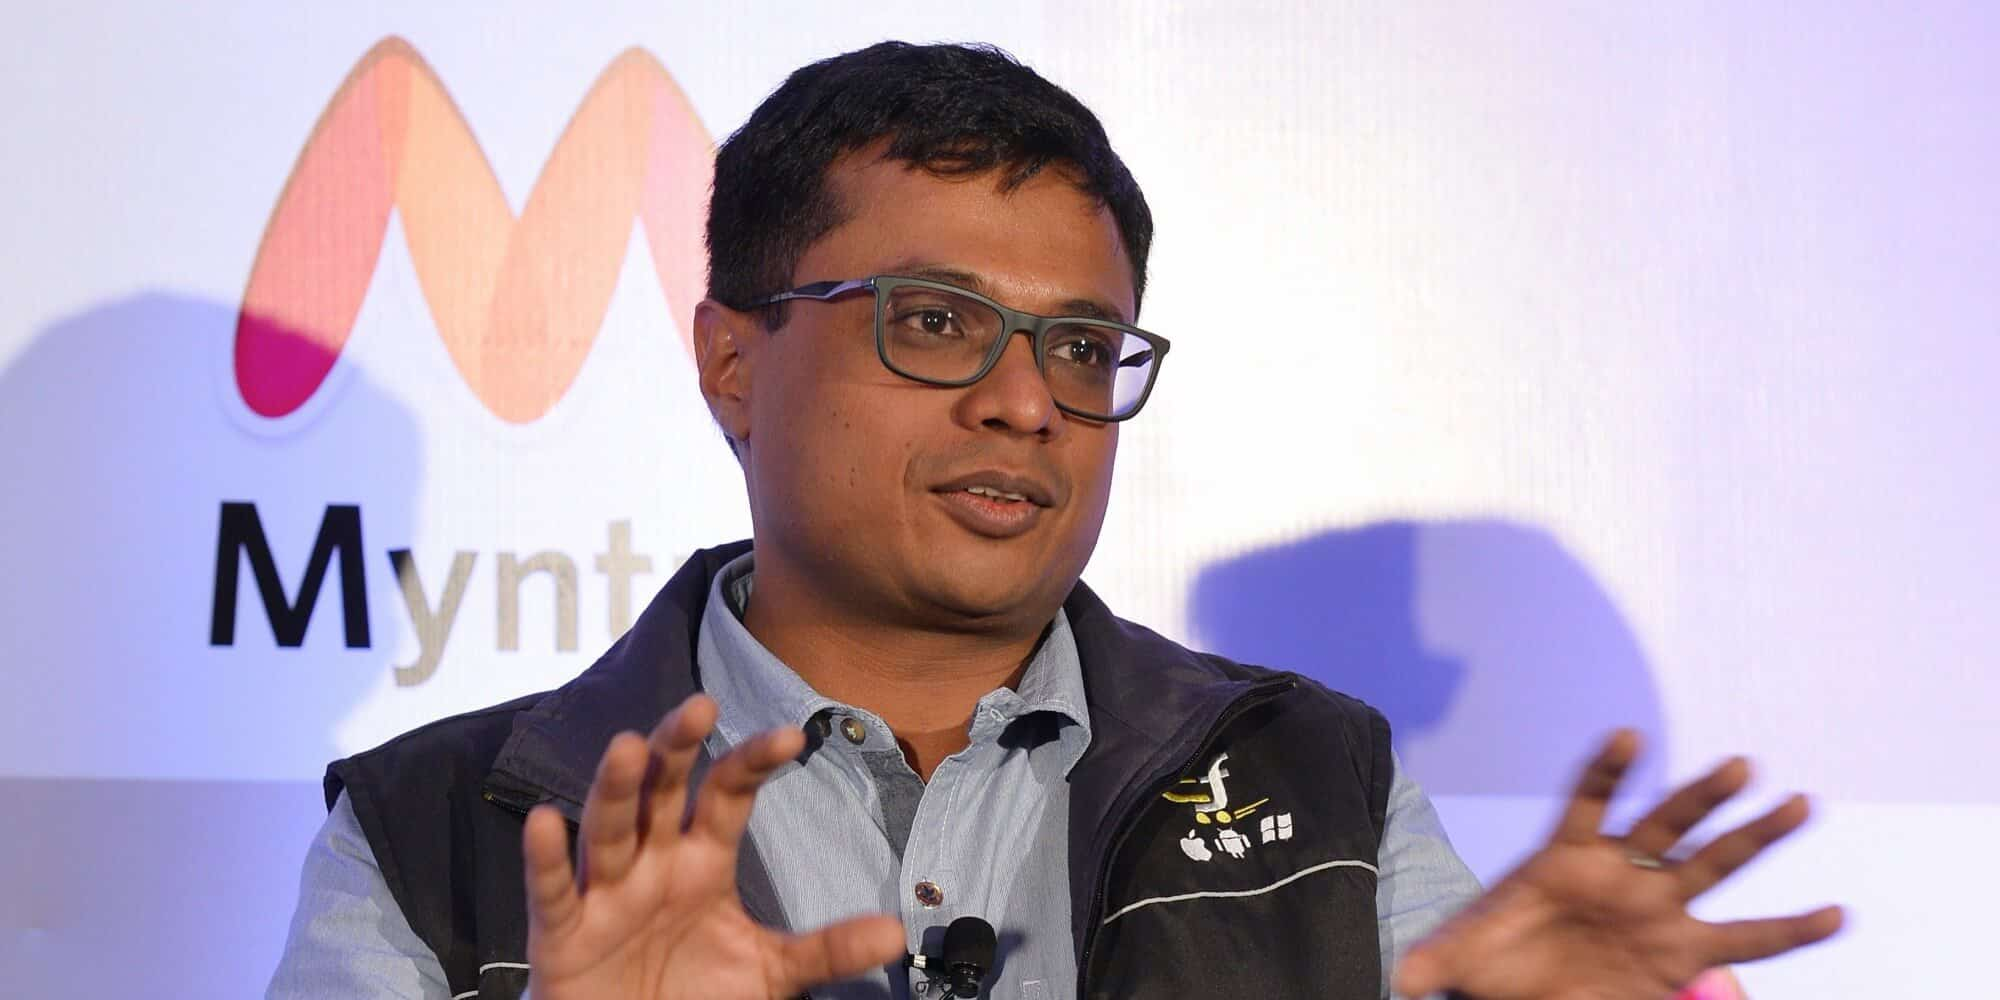 Flipkart Co-founder Sachin Bansal invests Rs 650 crores in online cab booking service Ola